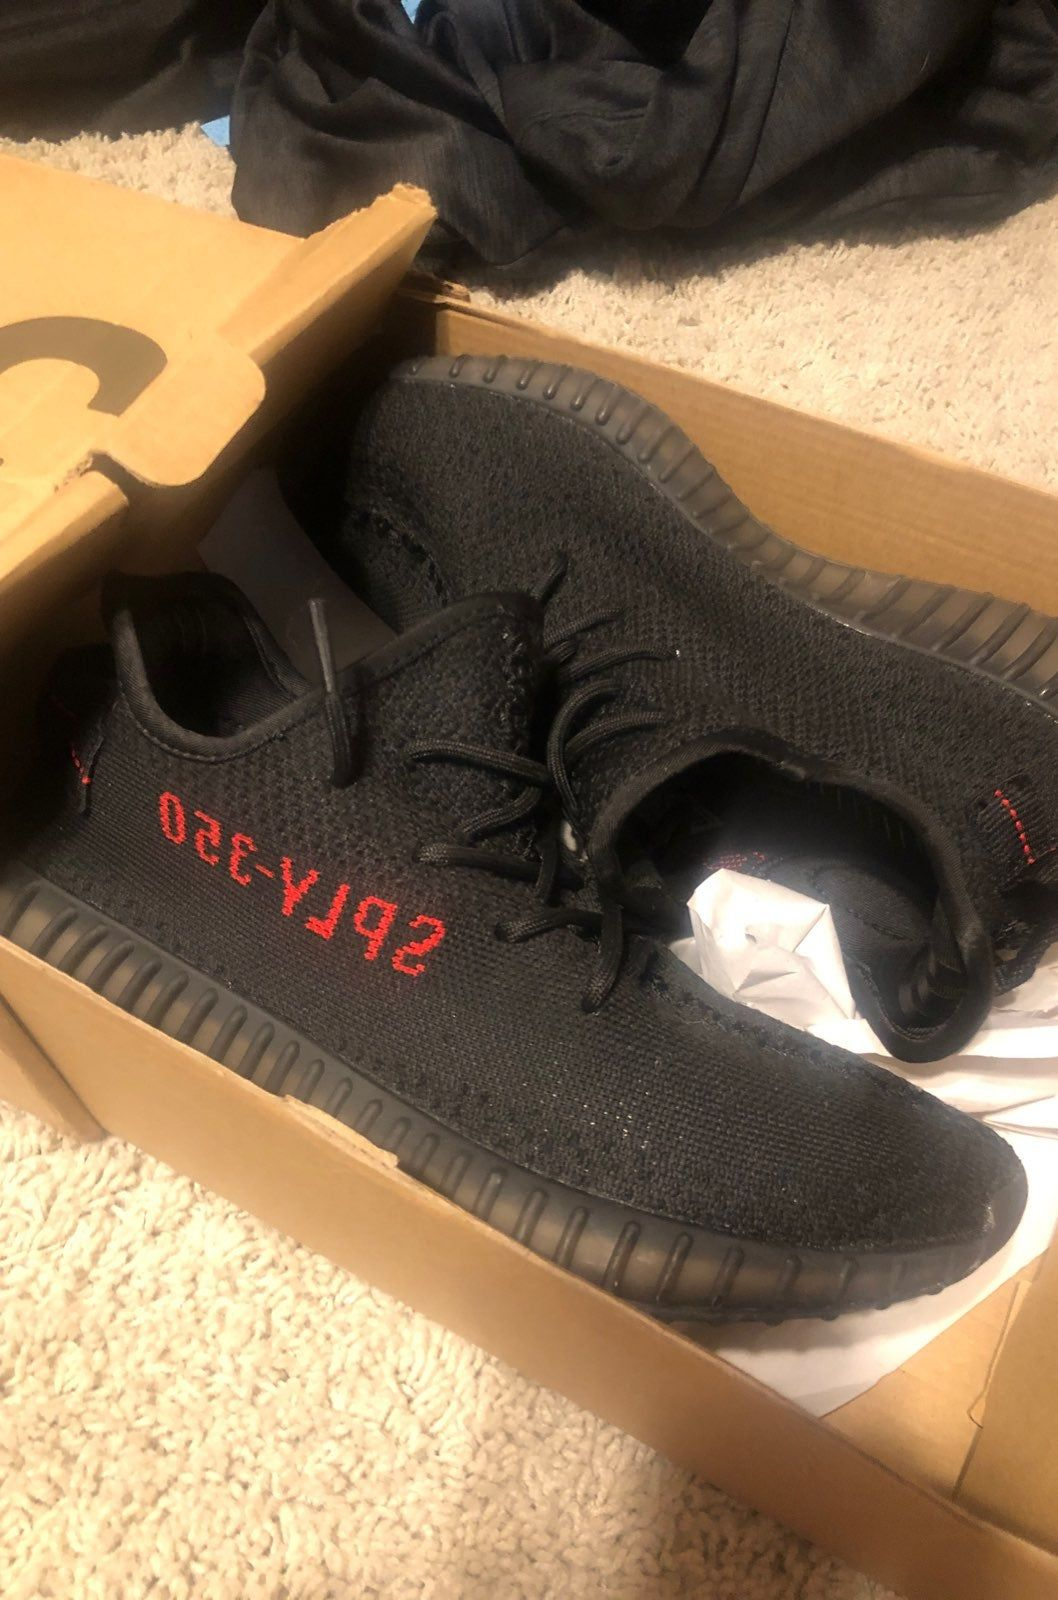 Pin on Yeezy Fashion sneakers